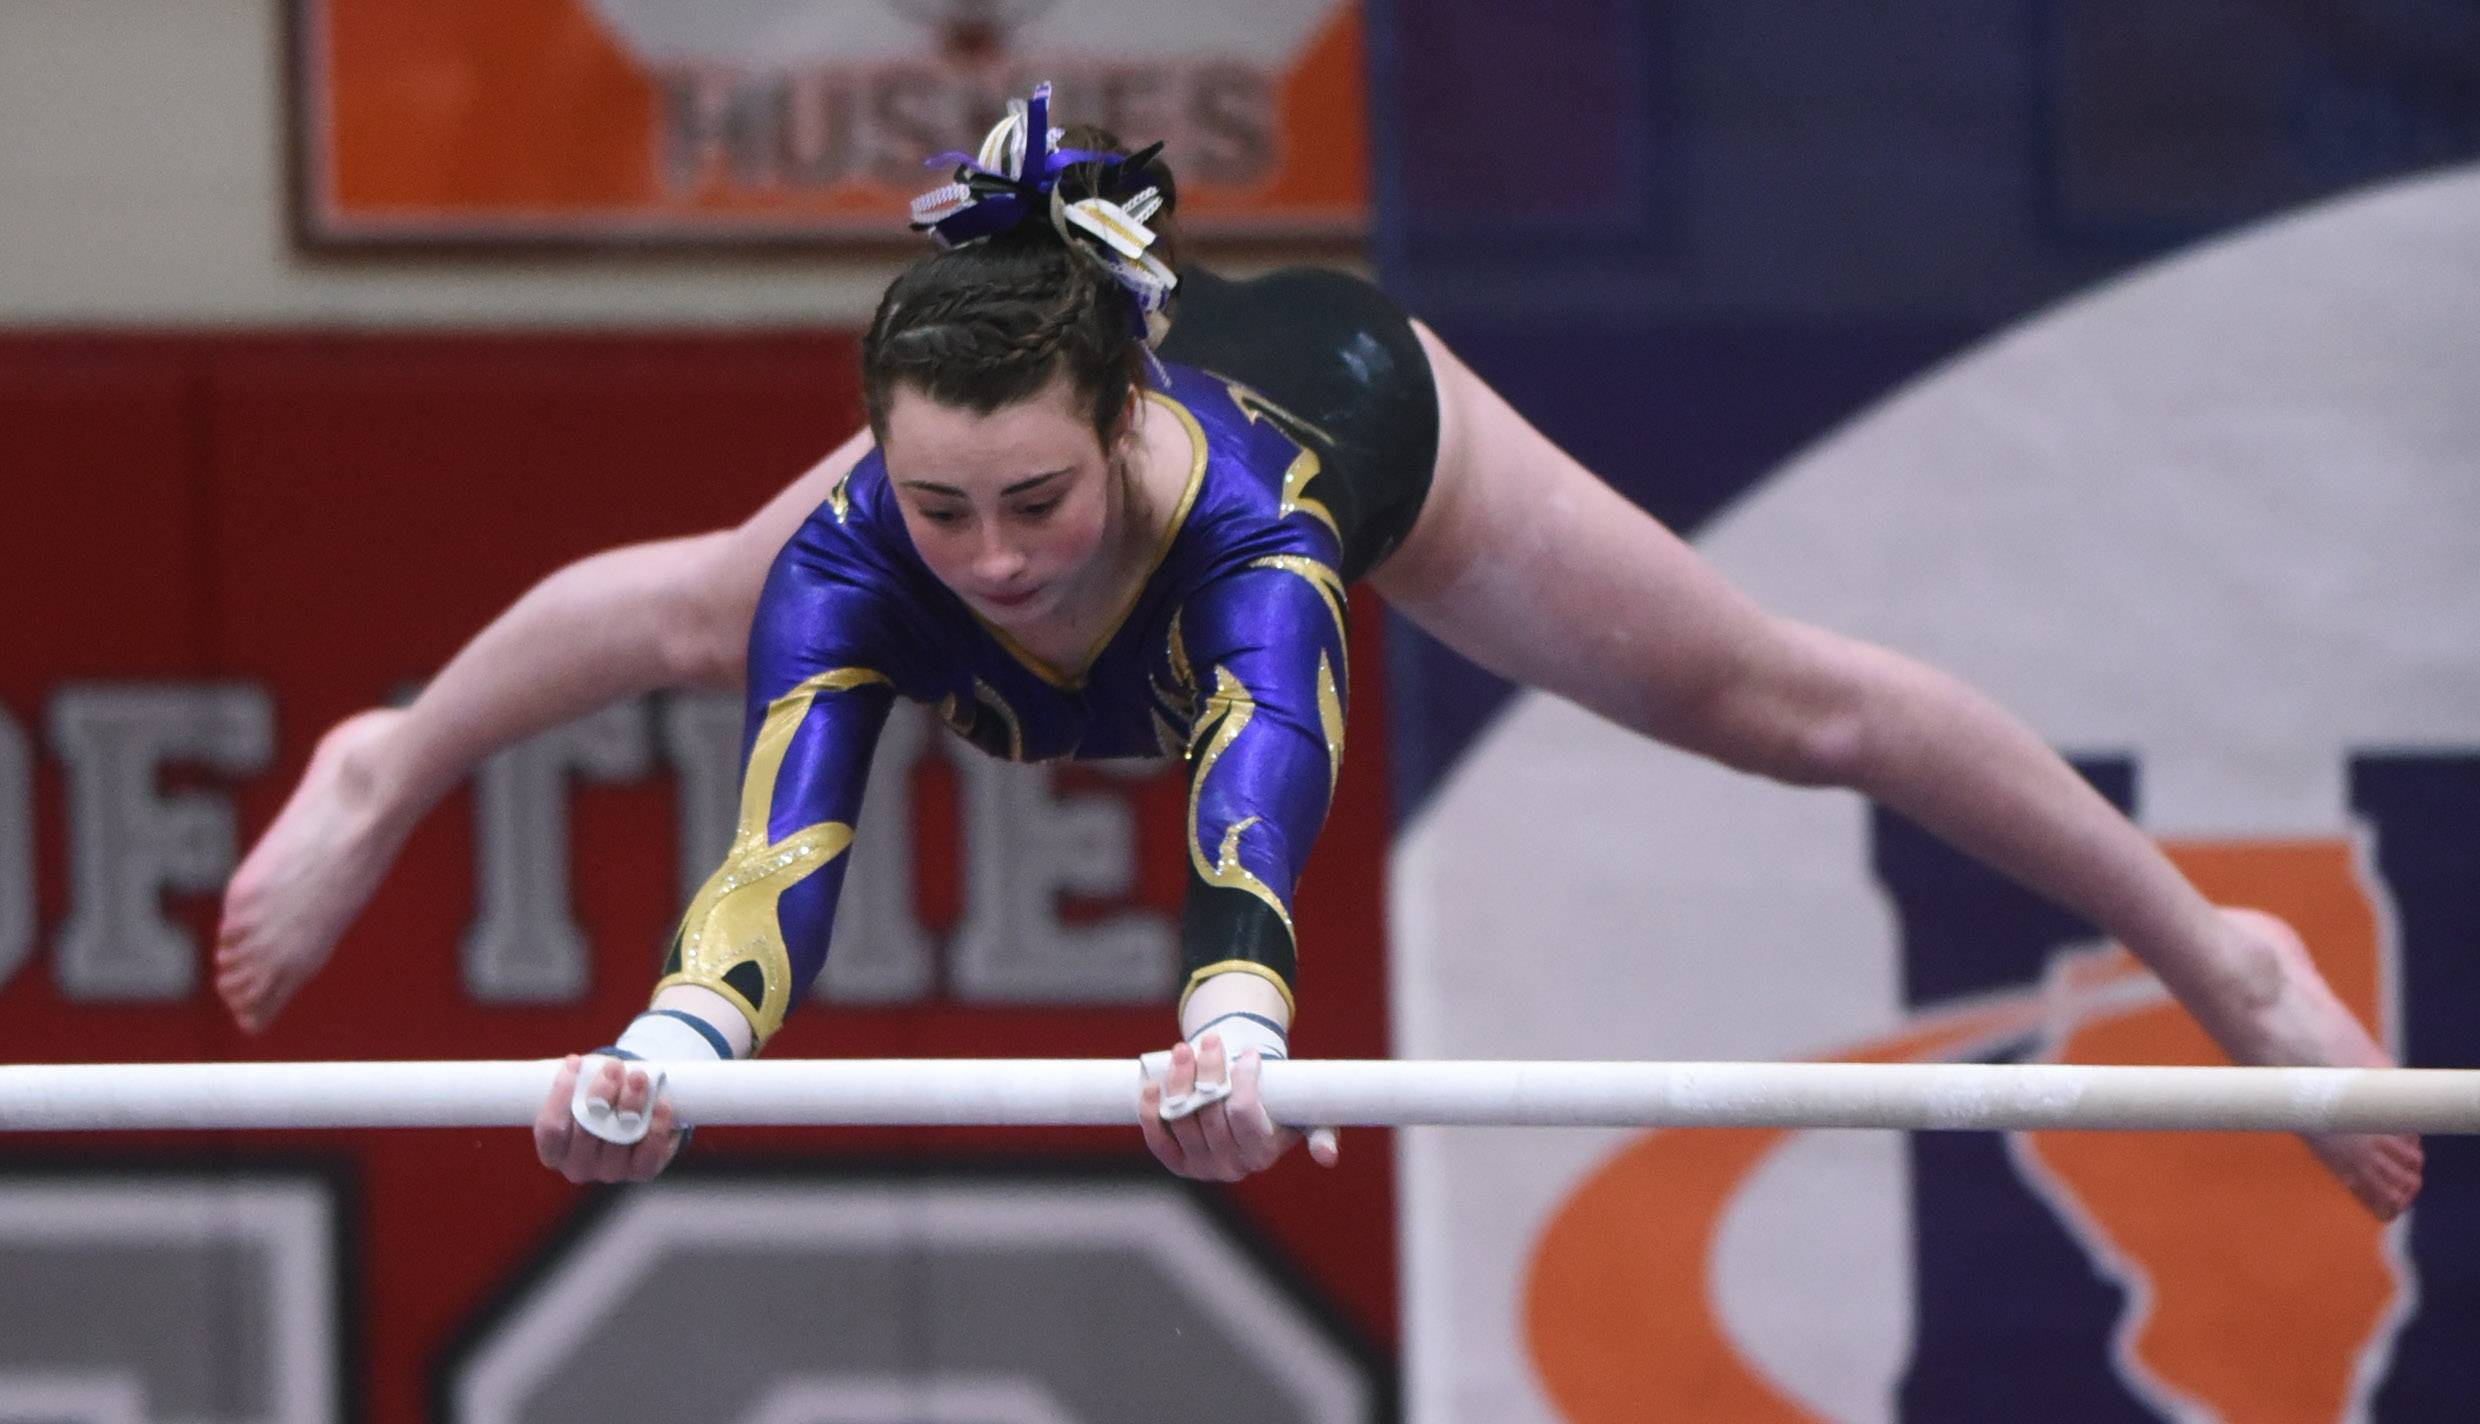 Rolling Meadows' Nicole Kane competes on the uneven parallel bars during the girls gymnastics state meet finals at Palatine High School on Saturday.